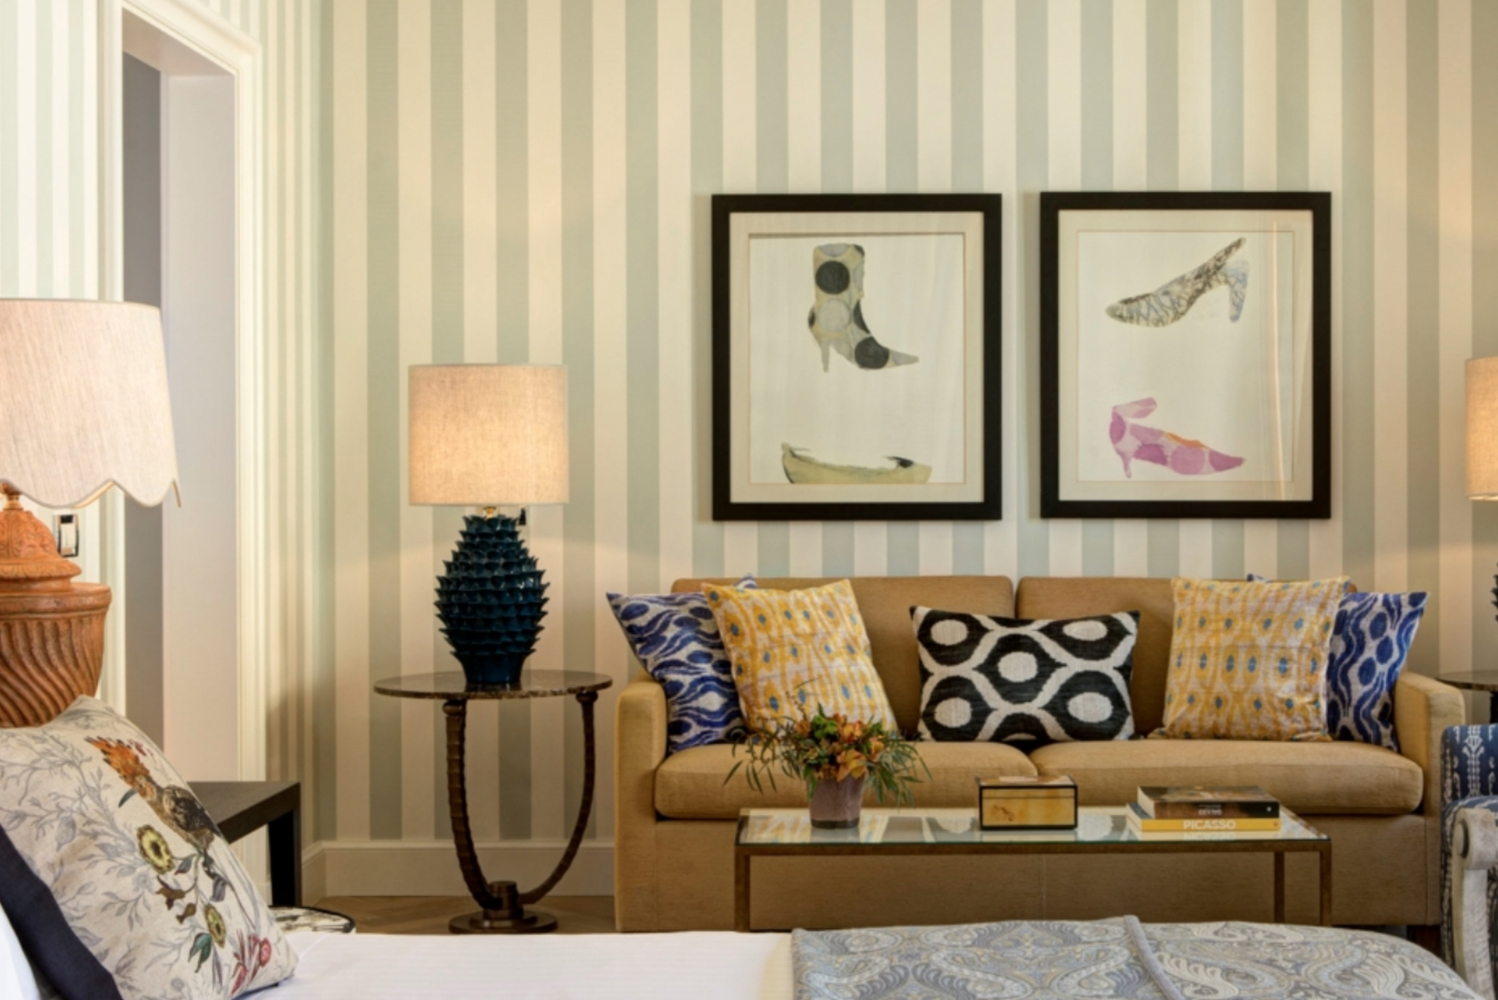 The suite is one of the largest suites in the Rocco Forte Hotel portfolio.